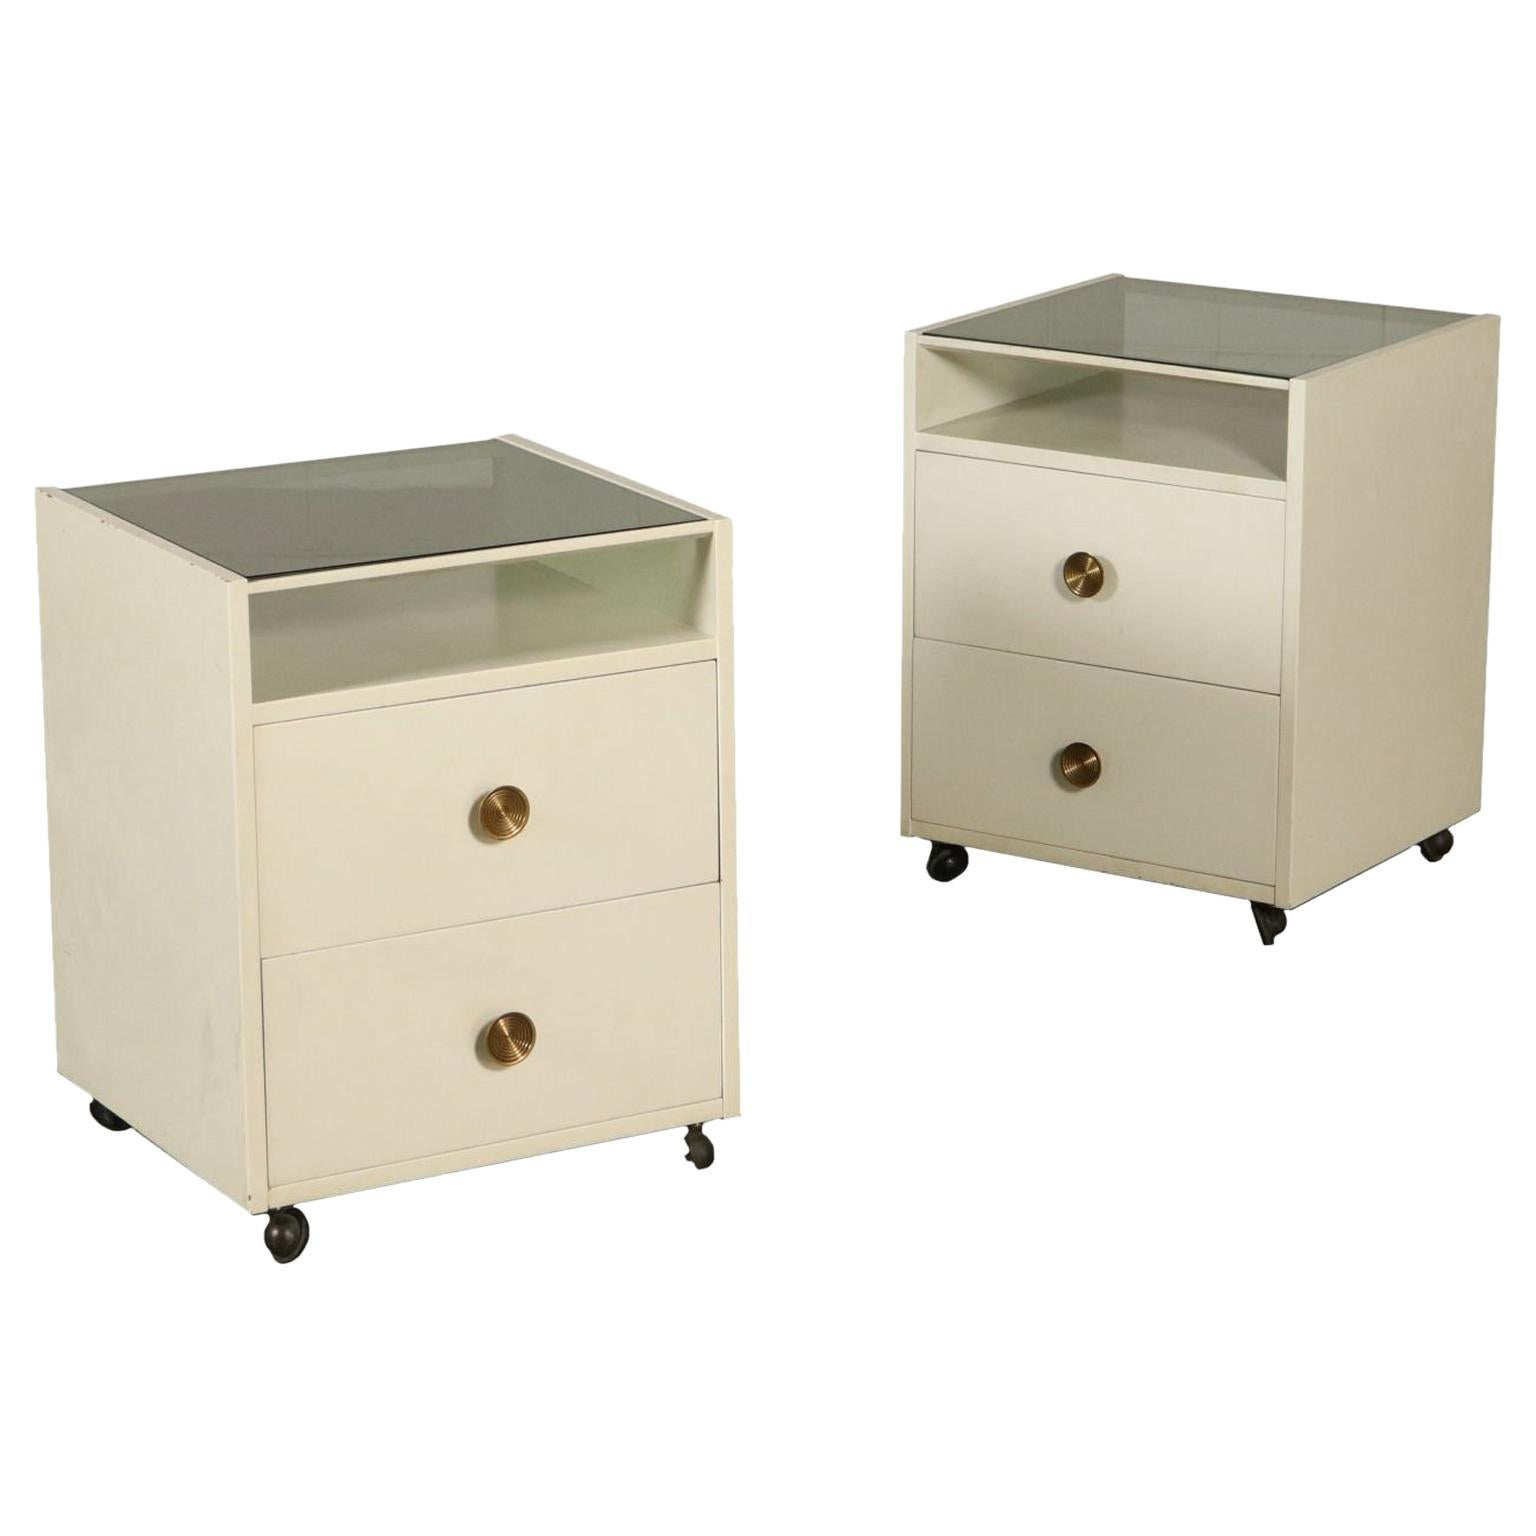 Pair of Nightstands with Wheels by De Carli for Sormani Wood Glass, 1960s